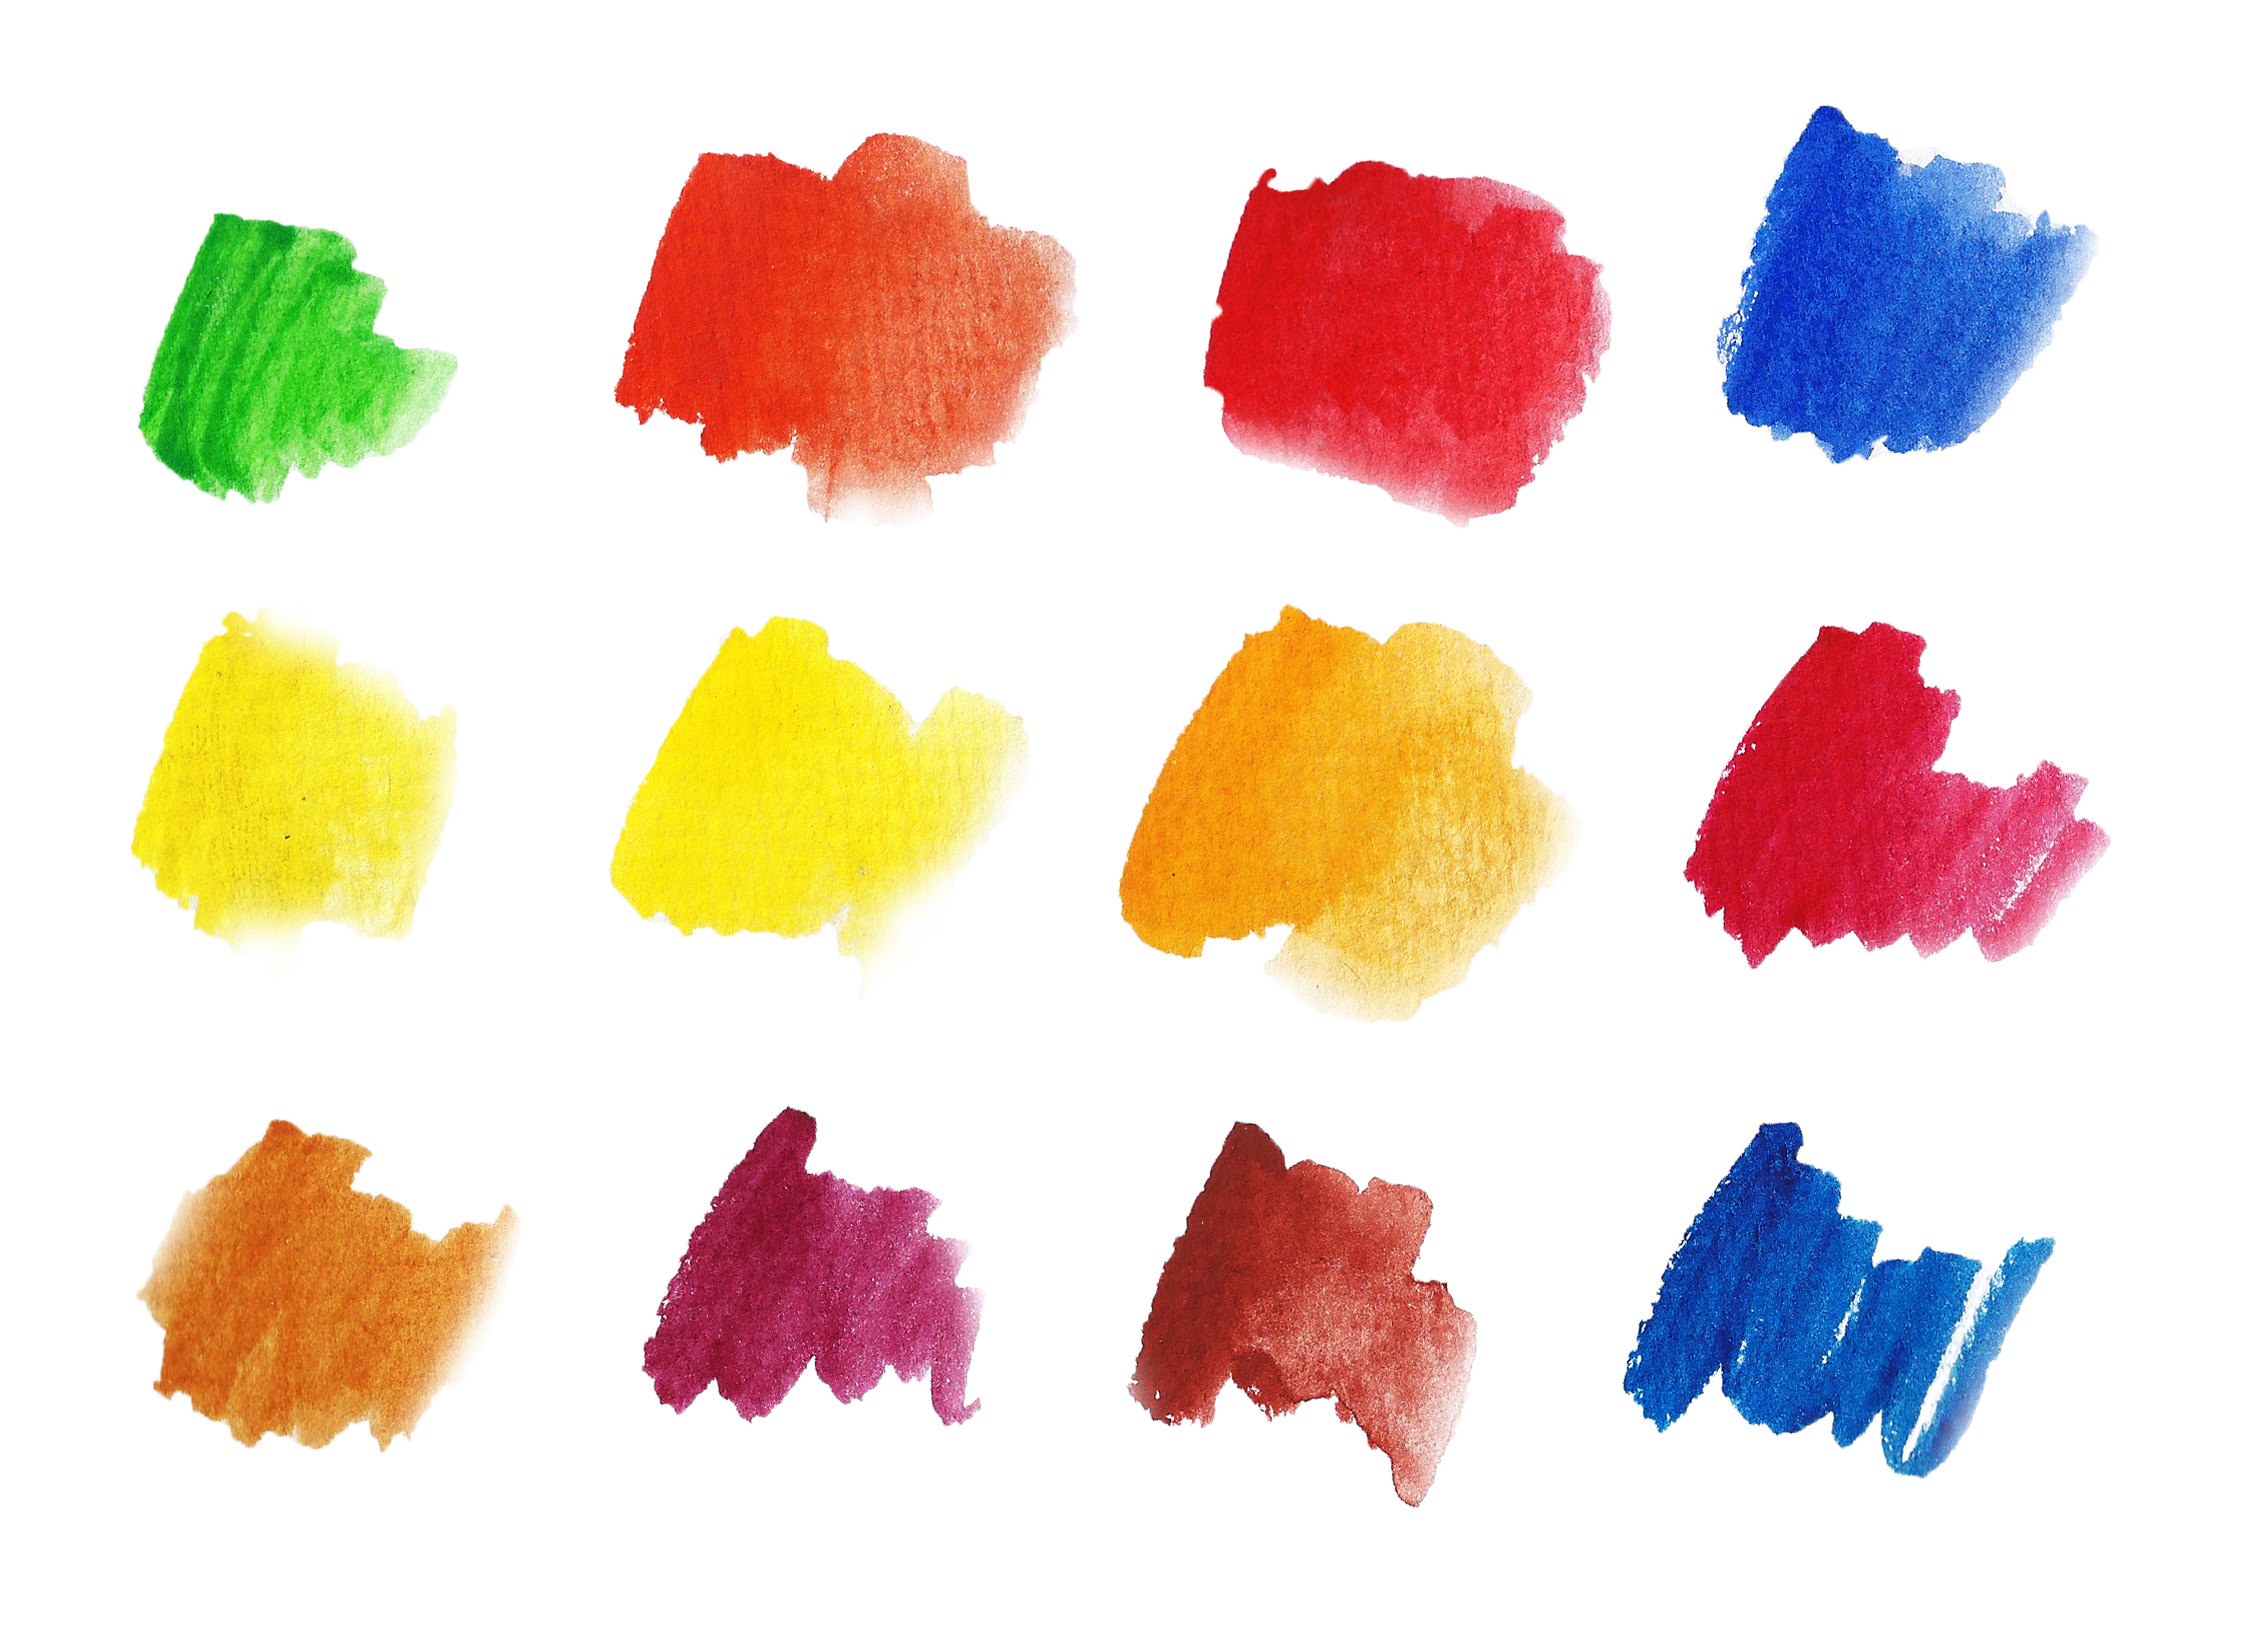 Basic Watercolor Shapes example image 2